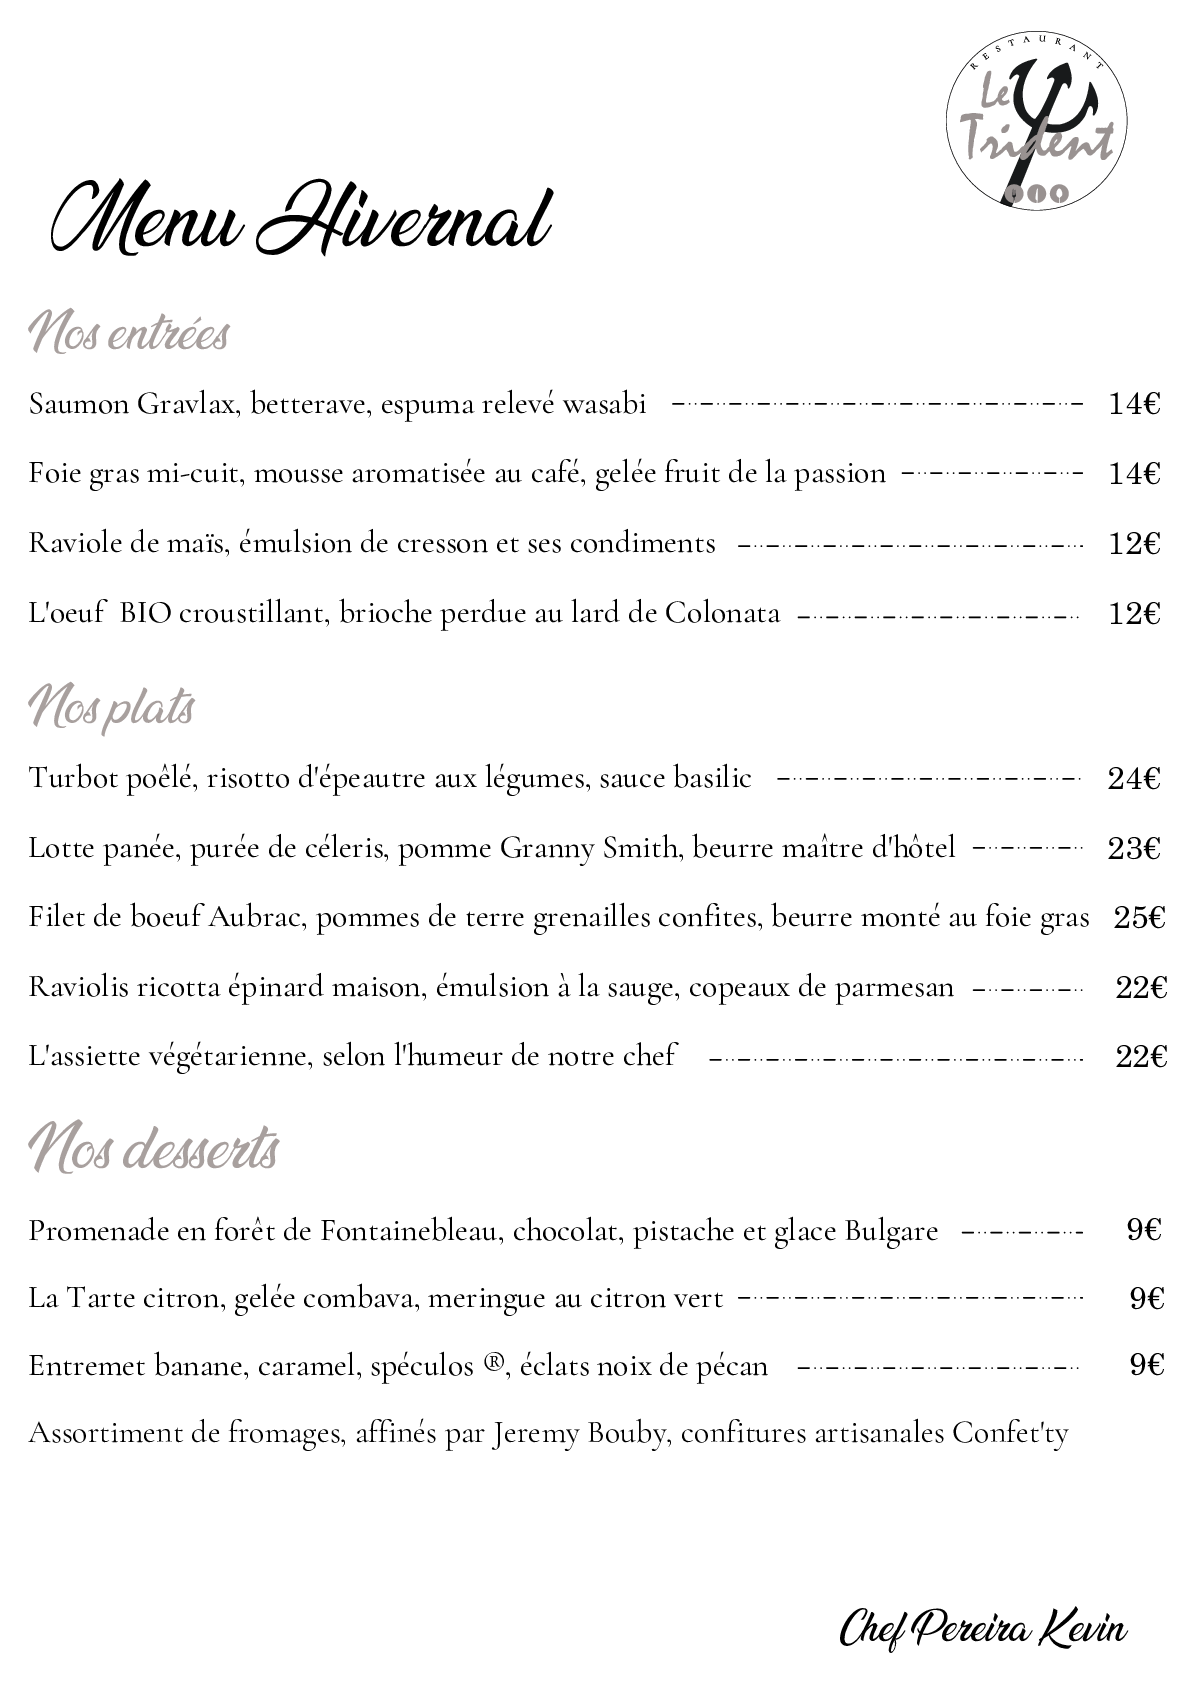 Menu Hivernal